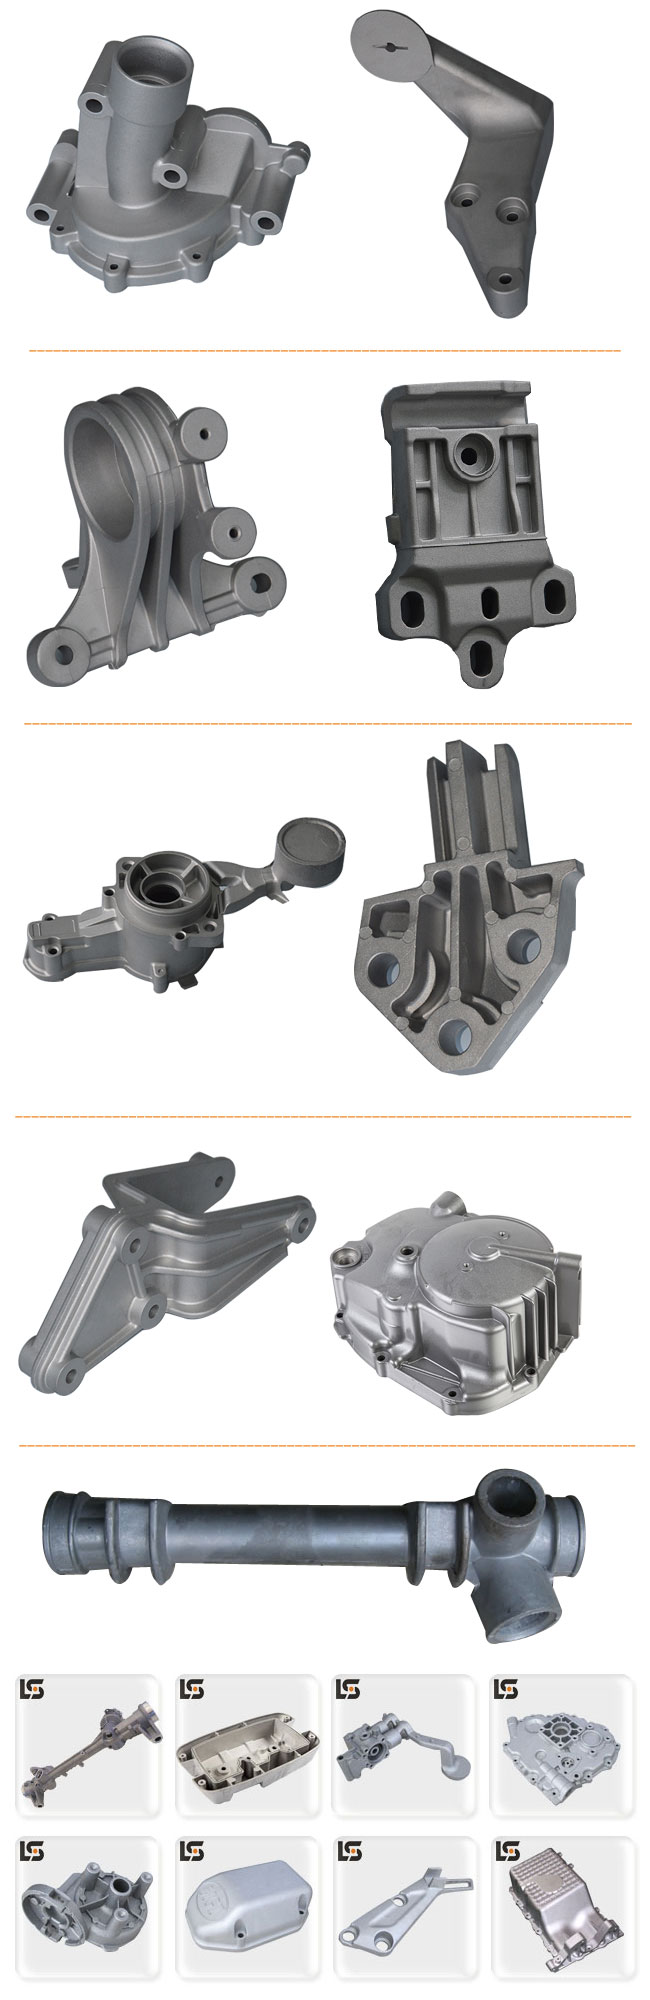 Aluminum Housing Motorcycle Parts, Motorcycle Parts and Accessories